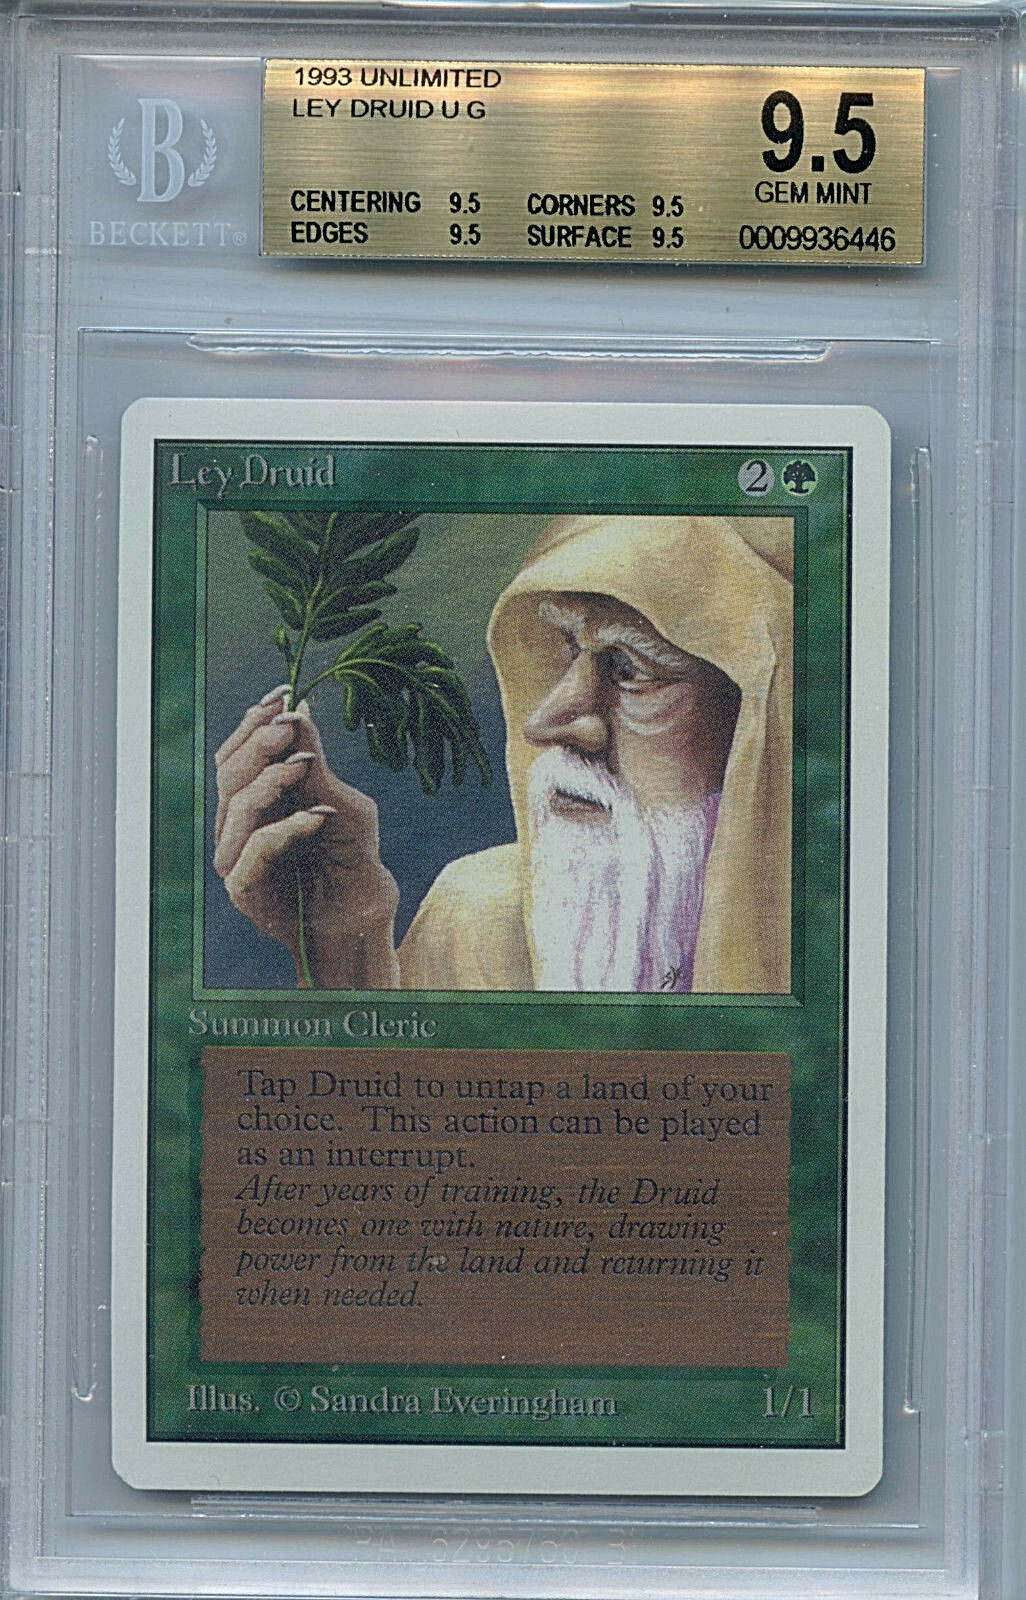 Mtg unbegrenzte ley druide bgs 9,5 gem - karte magic the gathering wotc 6446